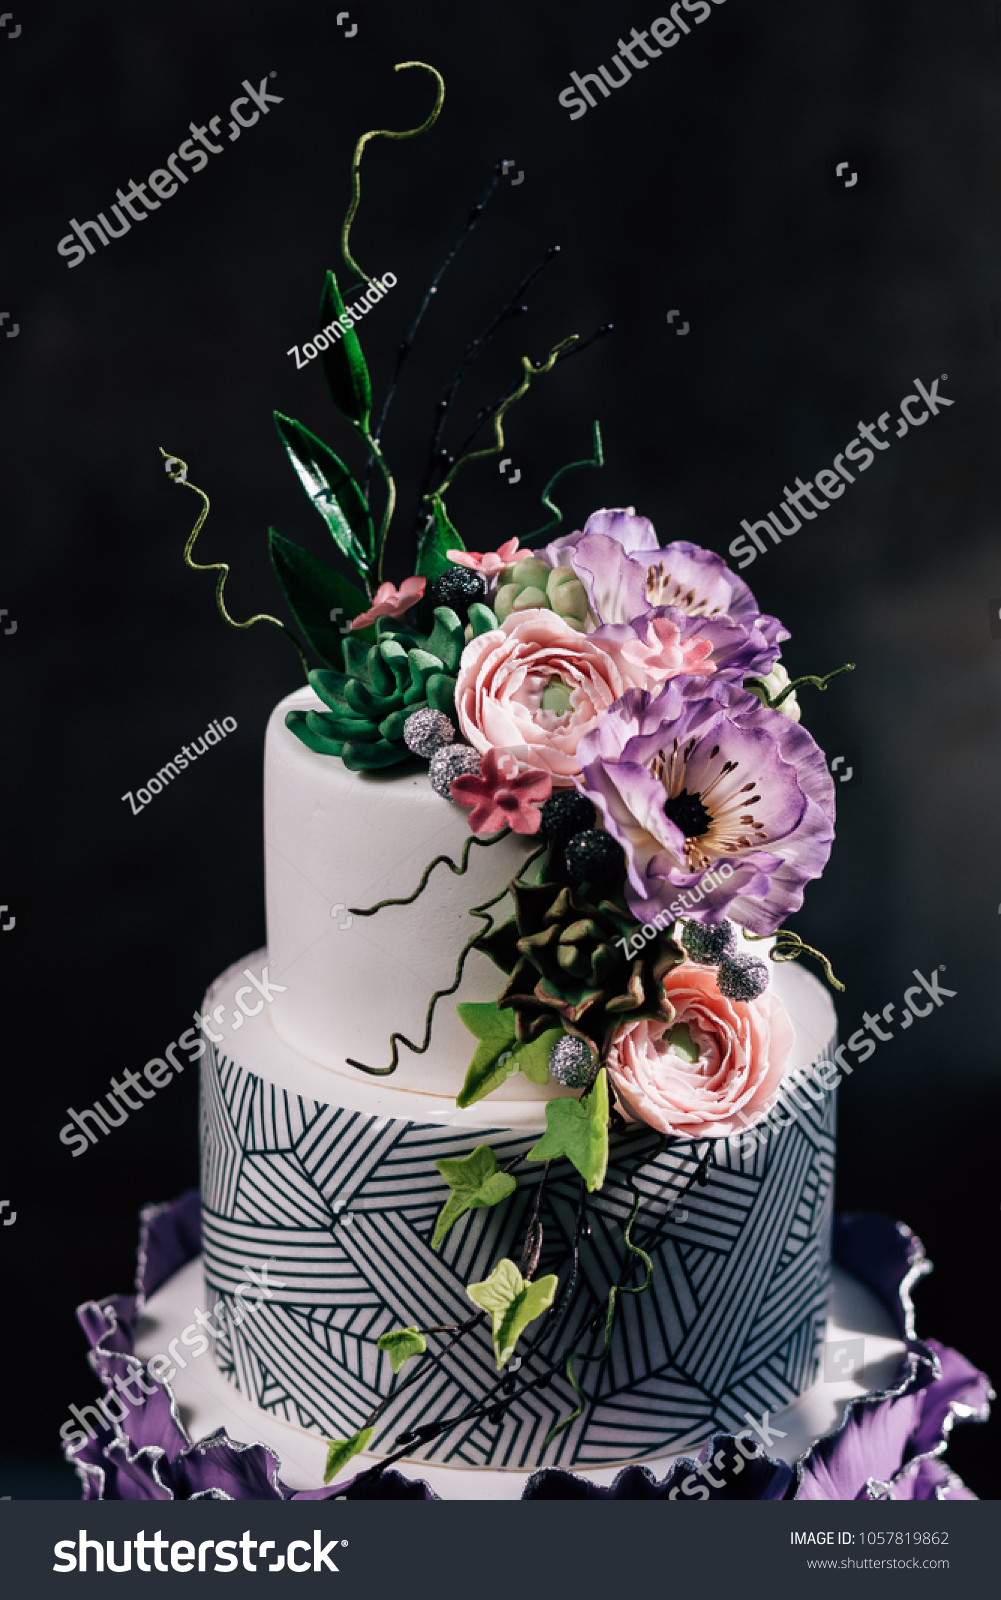 Purple Happy Birthday Cake With Beautiful Flowers Dozen Of Violet Cakes Gold And Fruits